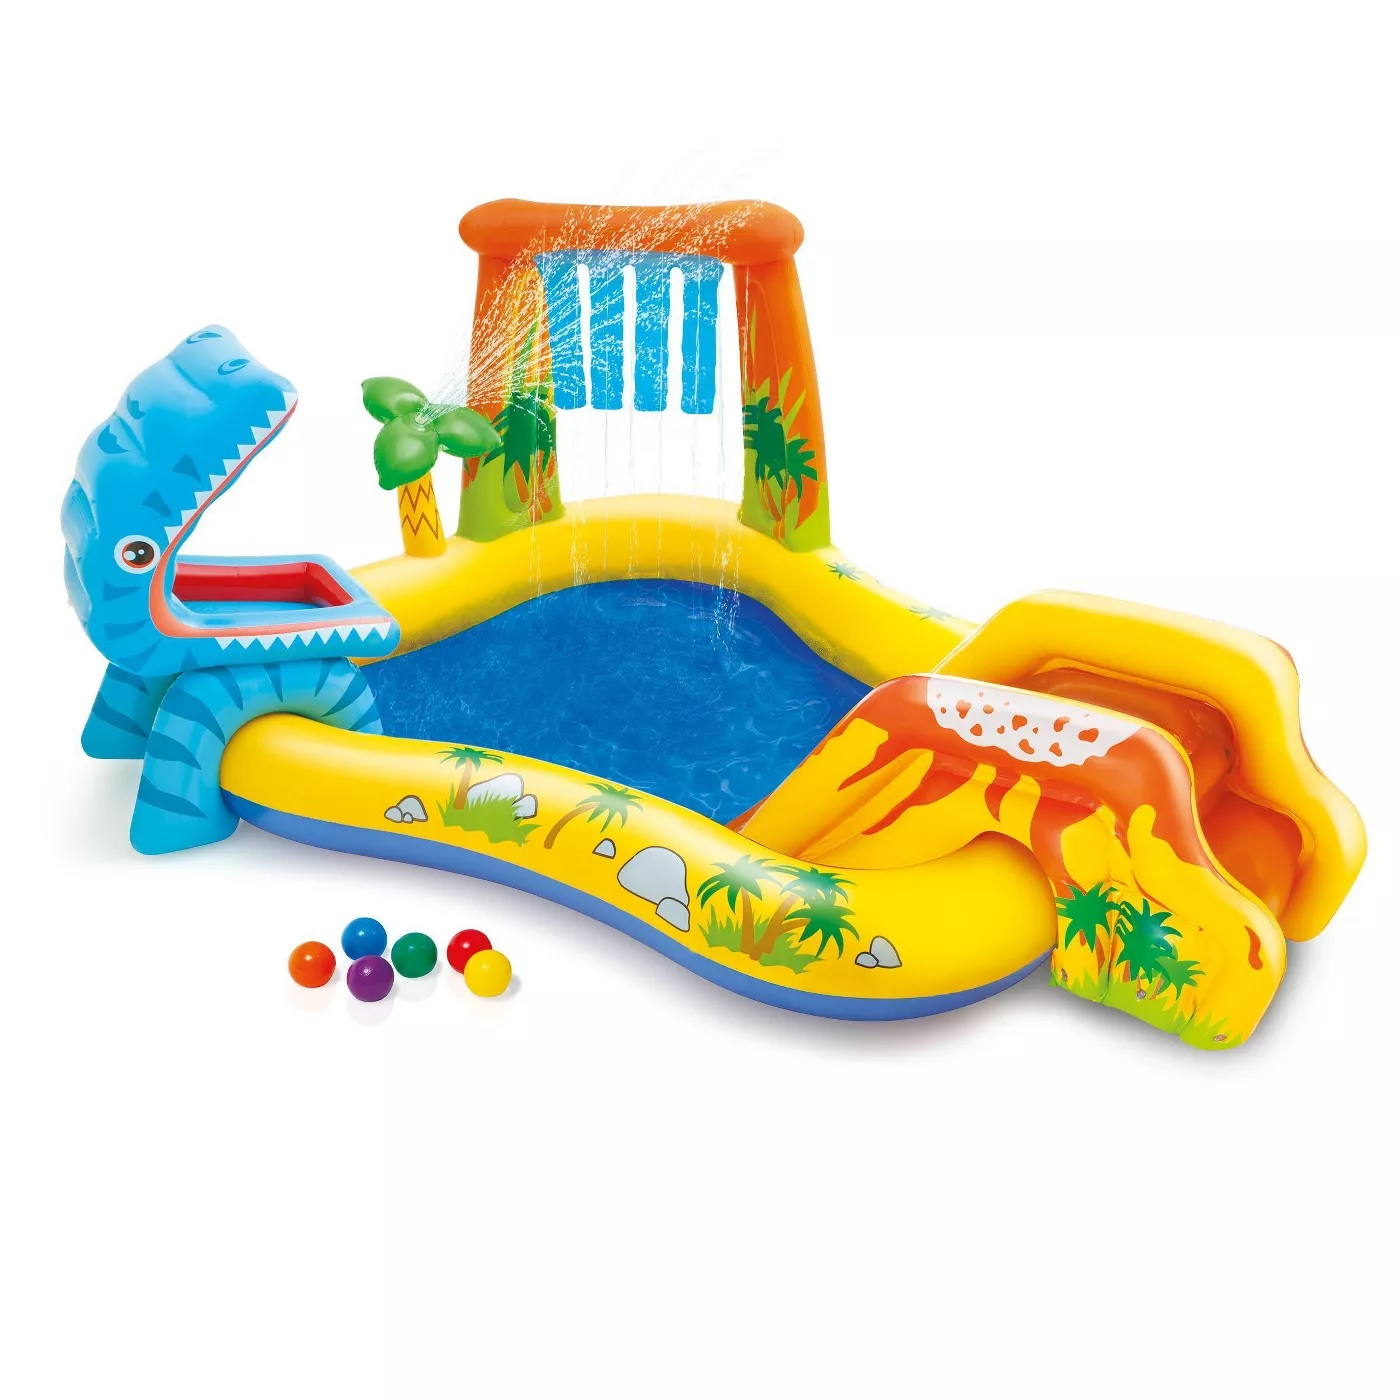 swimming pools & water toys image